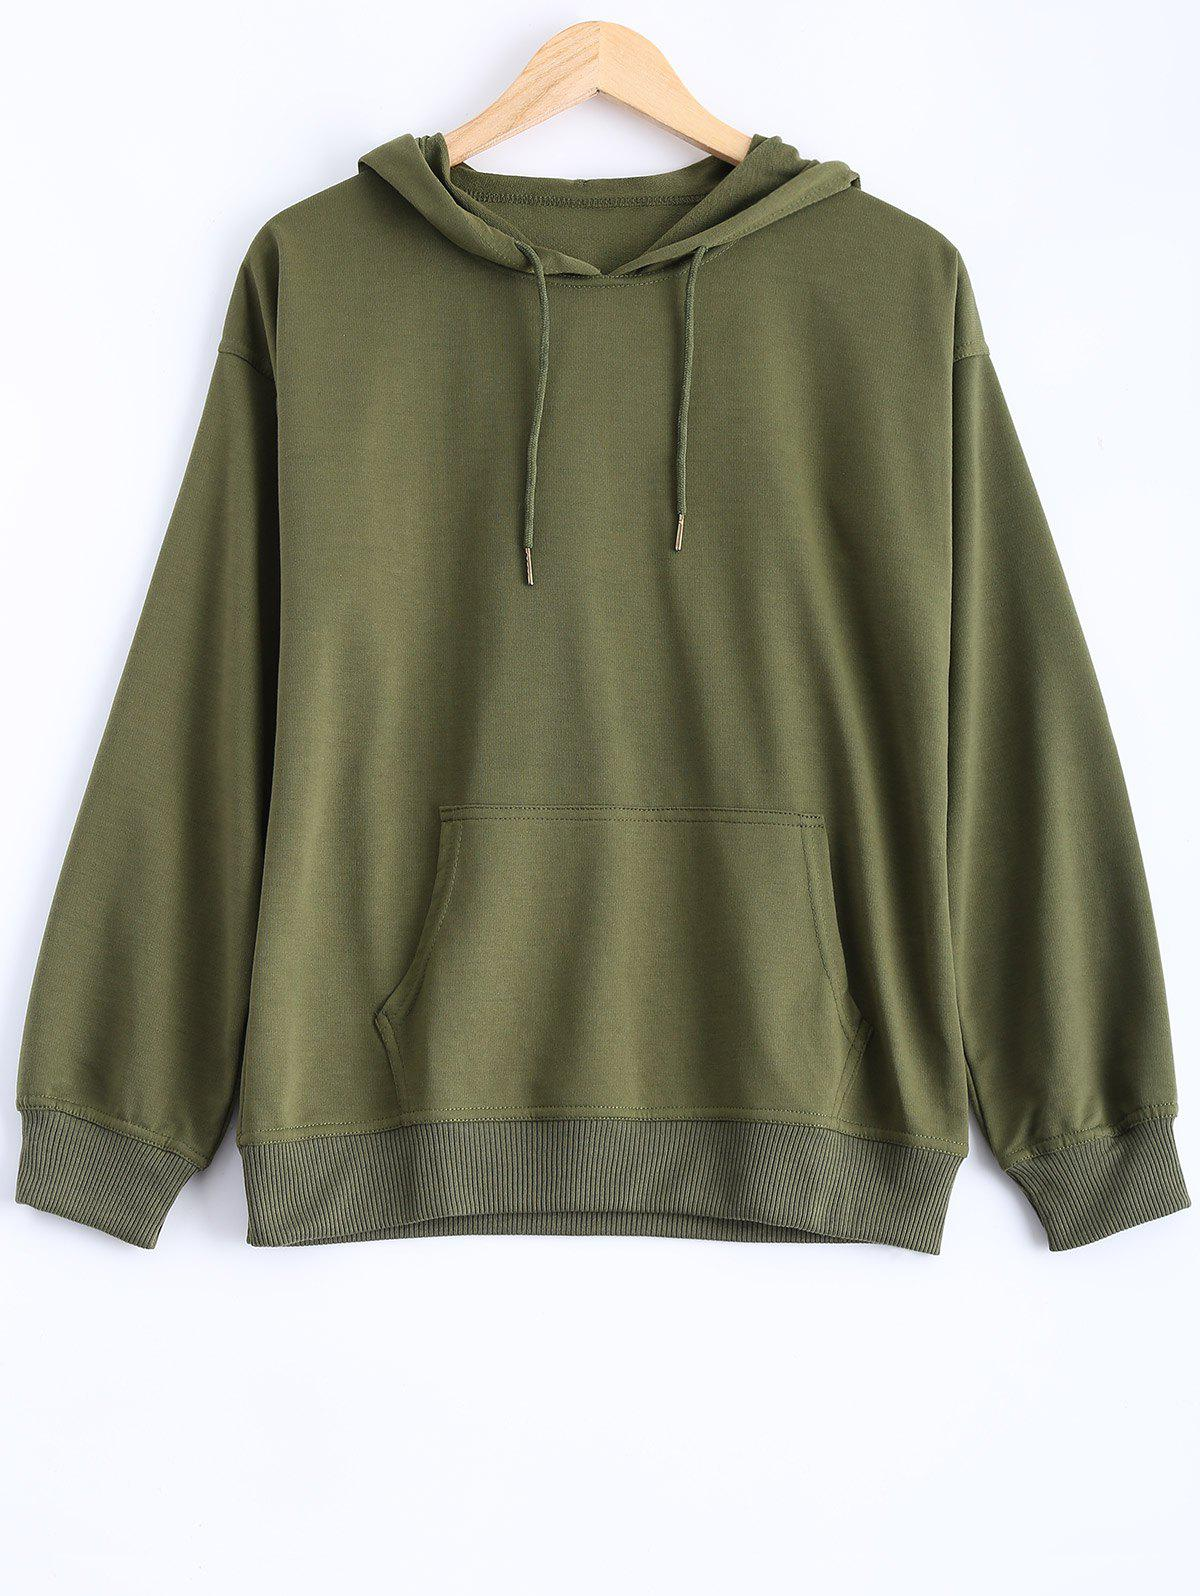 Pocket Design Pullover Hoodie - ARMY GREEN XL